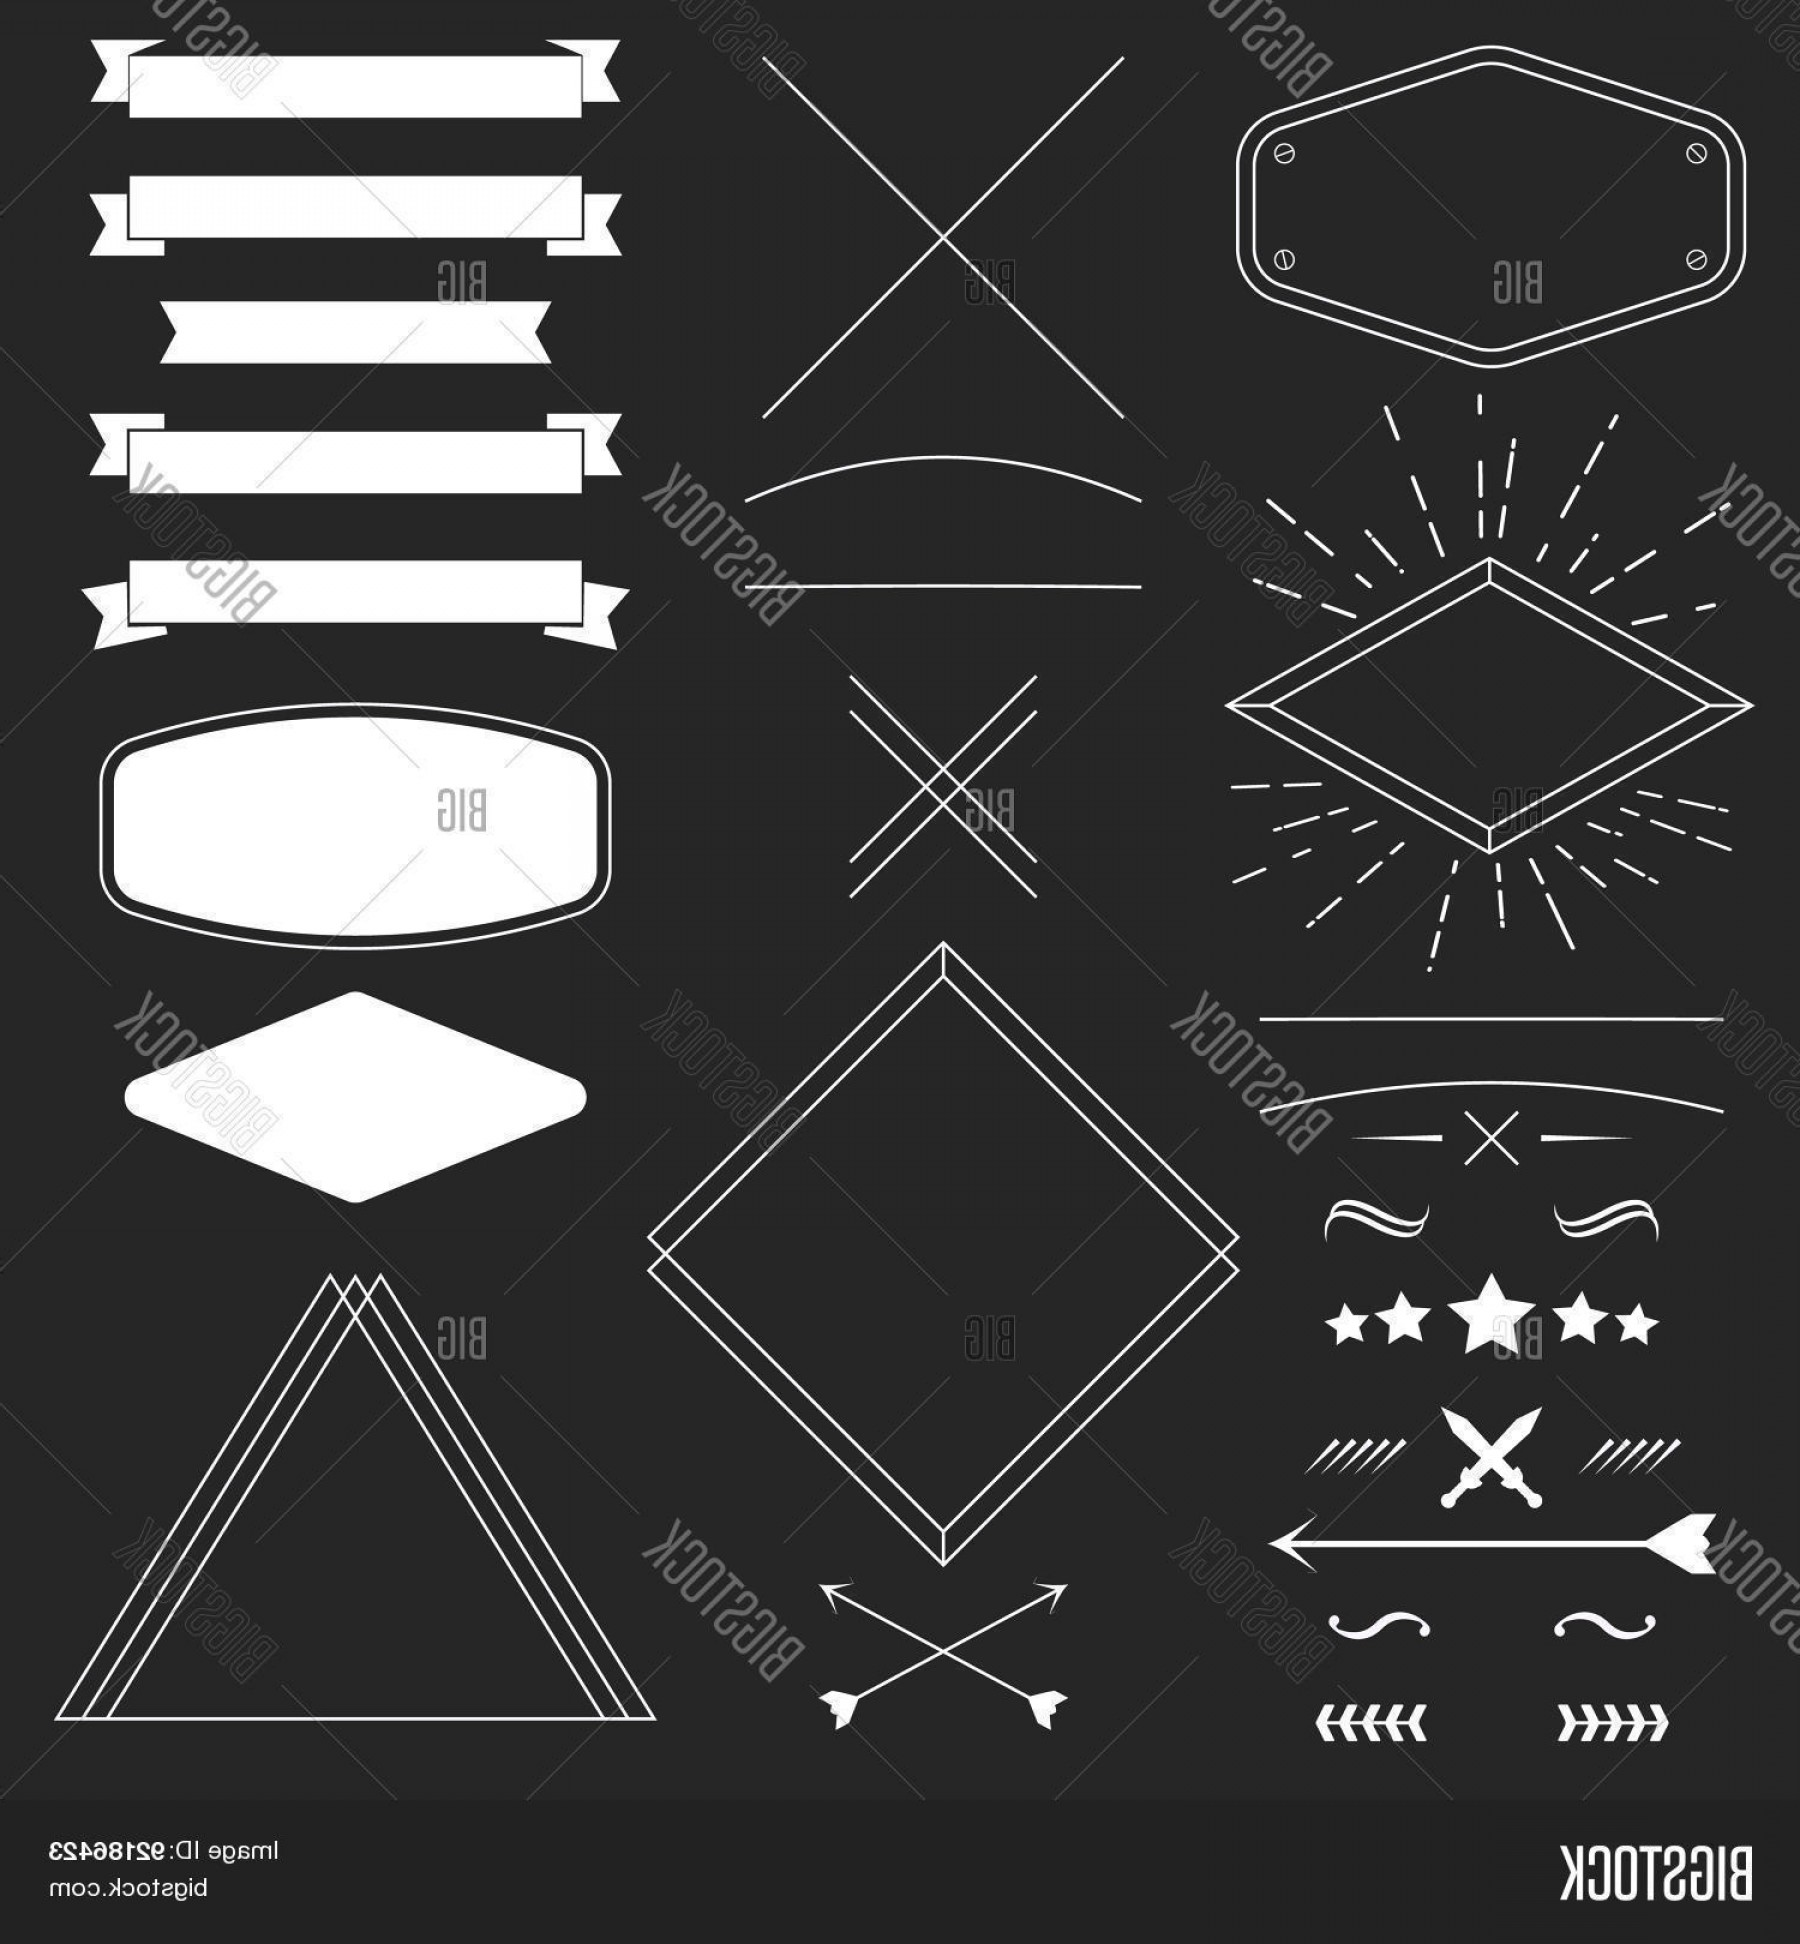 Hipster Vector Ribbon: Stock Vector Set Of Vintage Hipster Design Elements Like Framesc Ribbonsc Badgesc Divider Vector Illustration Fo